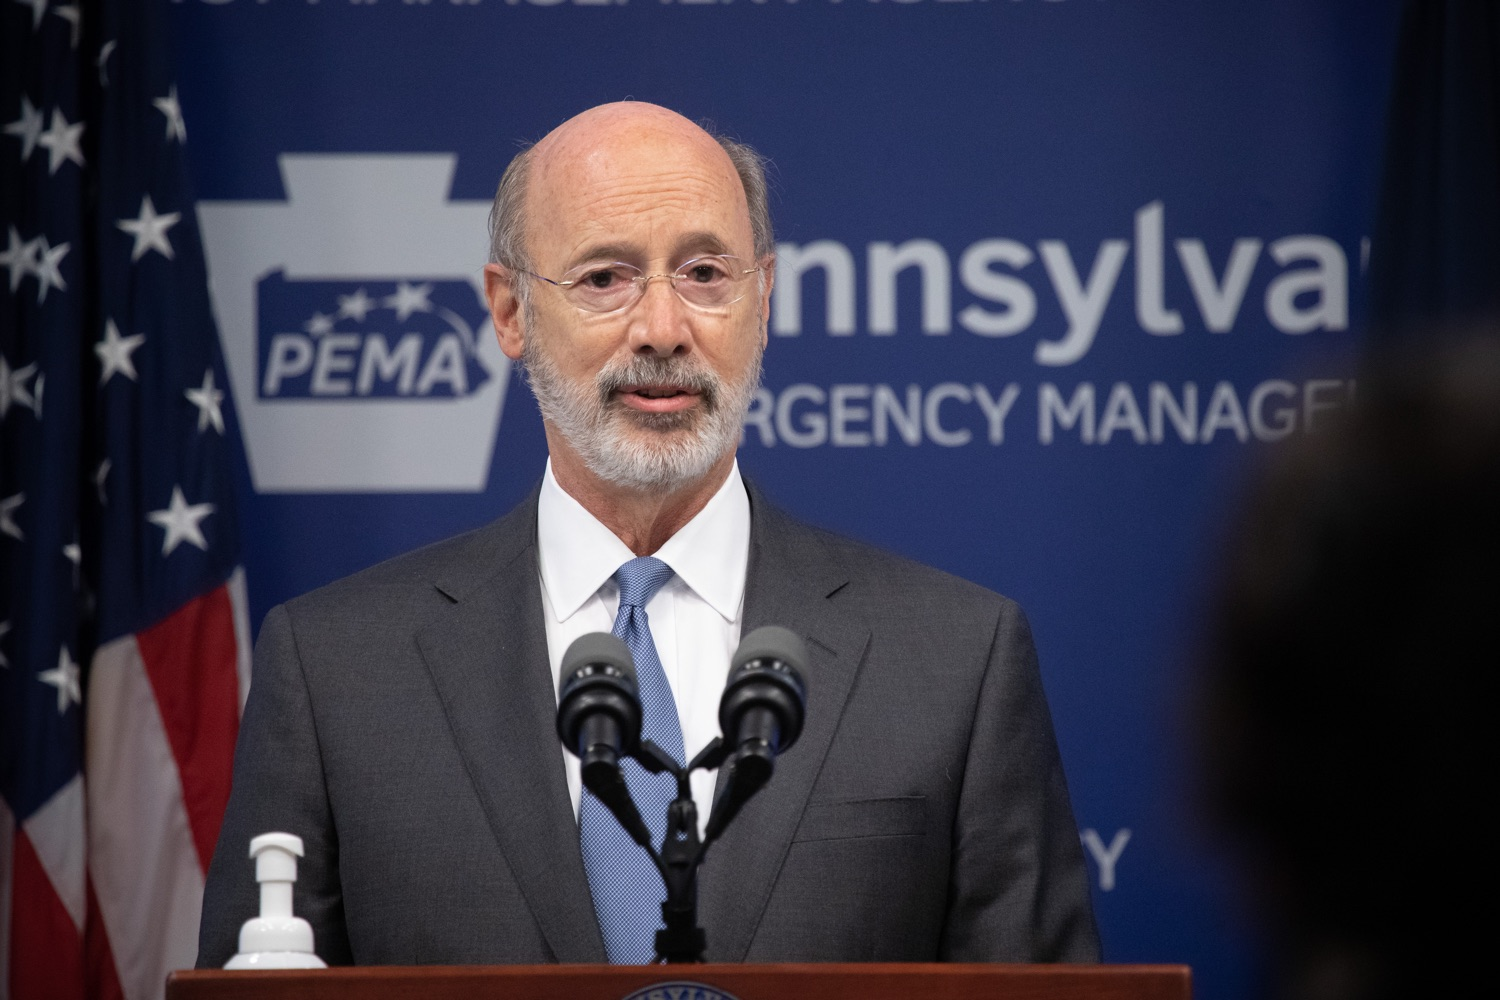 "<a href=""https://filesource.wostreaming.net/commonwealthofpa/photo/18088_gov_covid_update_dz_0003.jpg"" target=""_blank"">⇣ Download Photo<br></a>Governor Tom Wolf answers questions from the press. Governor Tom Wolf announced that people with intellectual disabilities and autism and the providers of support services for these vulnerable Pennsylvanians will receive $260 million in CARES Act funding to help continue to provide services during the COVID-19 pandemic.  Gov. Wolf was joined by Department of Human Services Secretary Teresa Miller, who outlined to details of funding allocations.  JUNE 15, 2020 - HARRISBURG, PA"